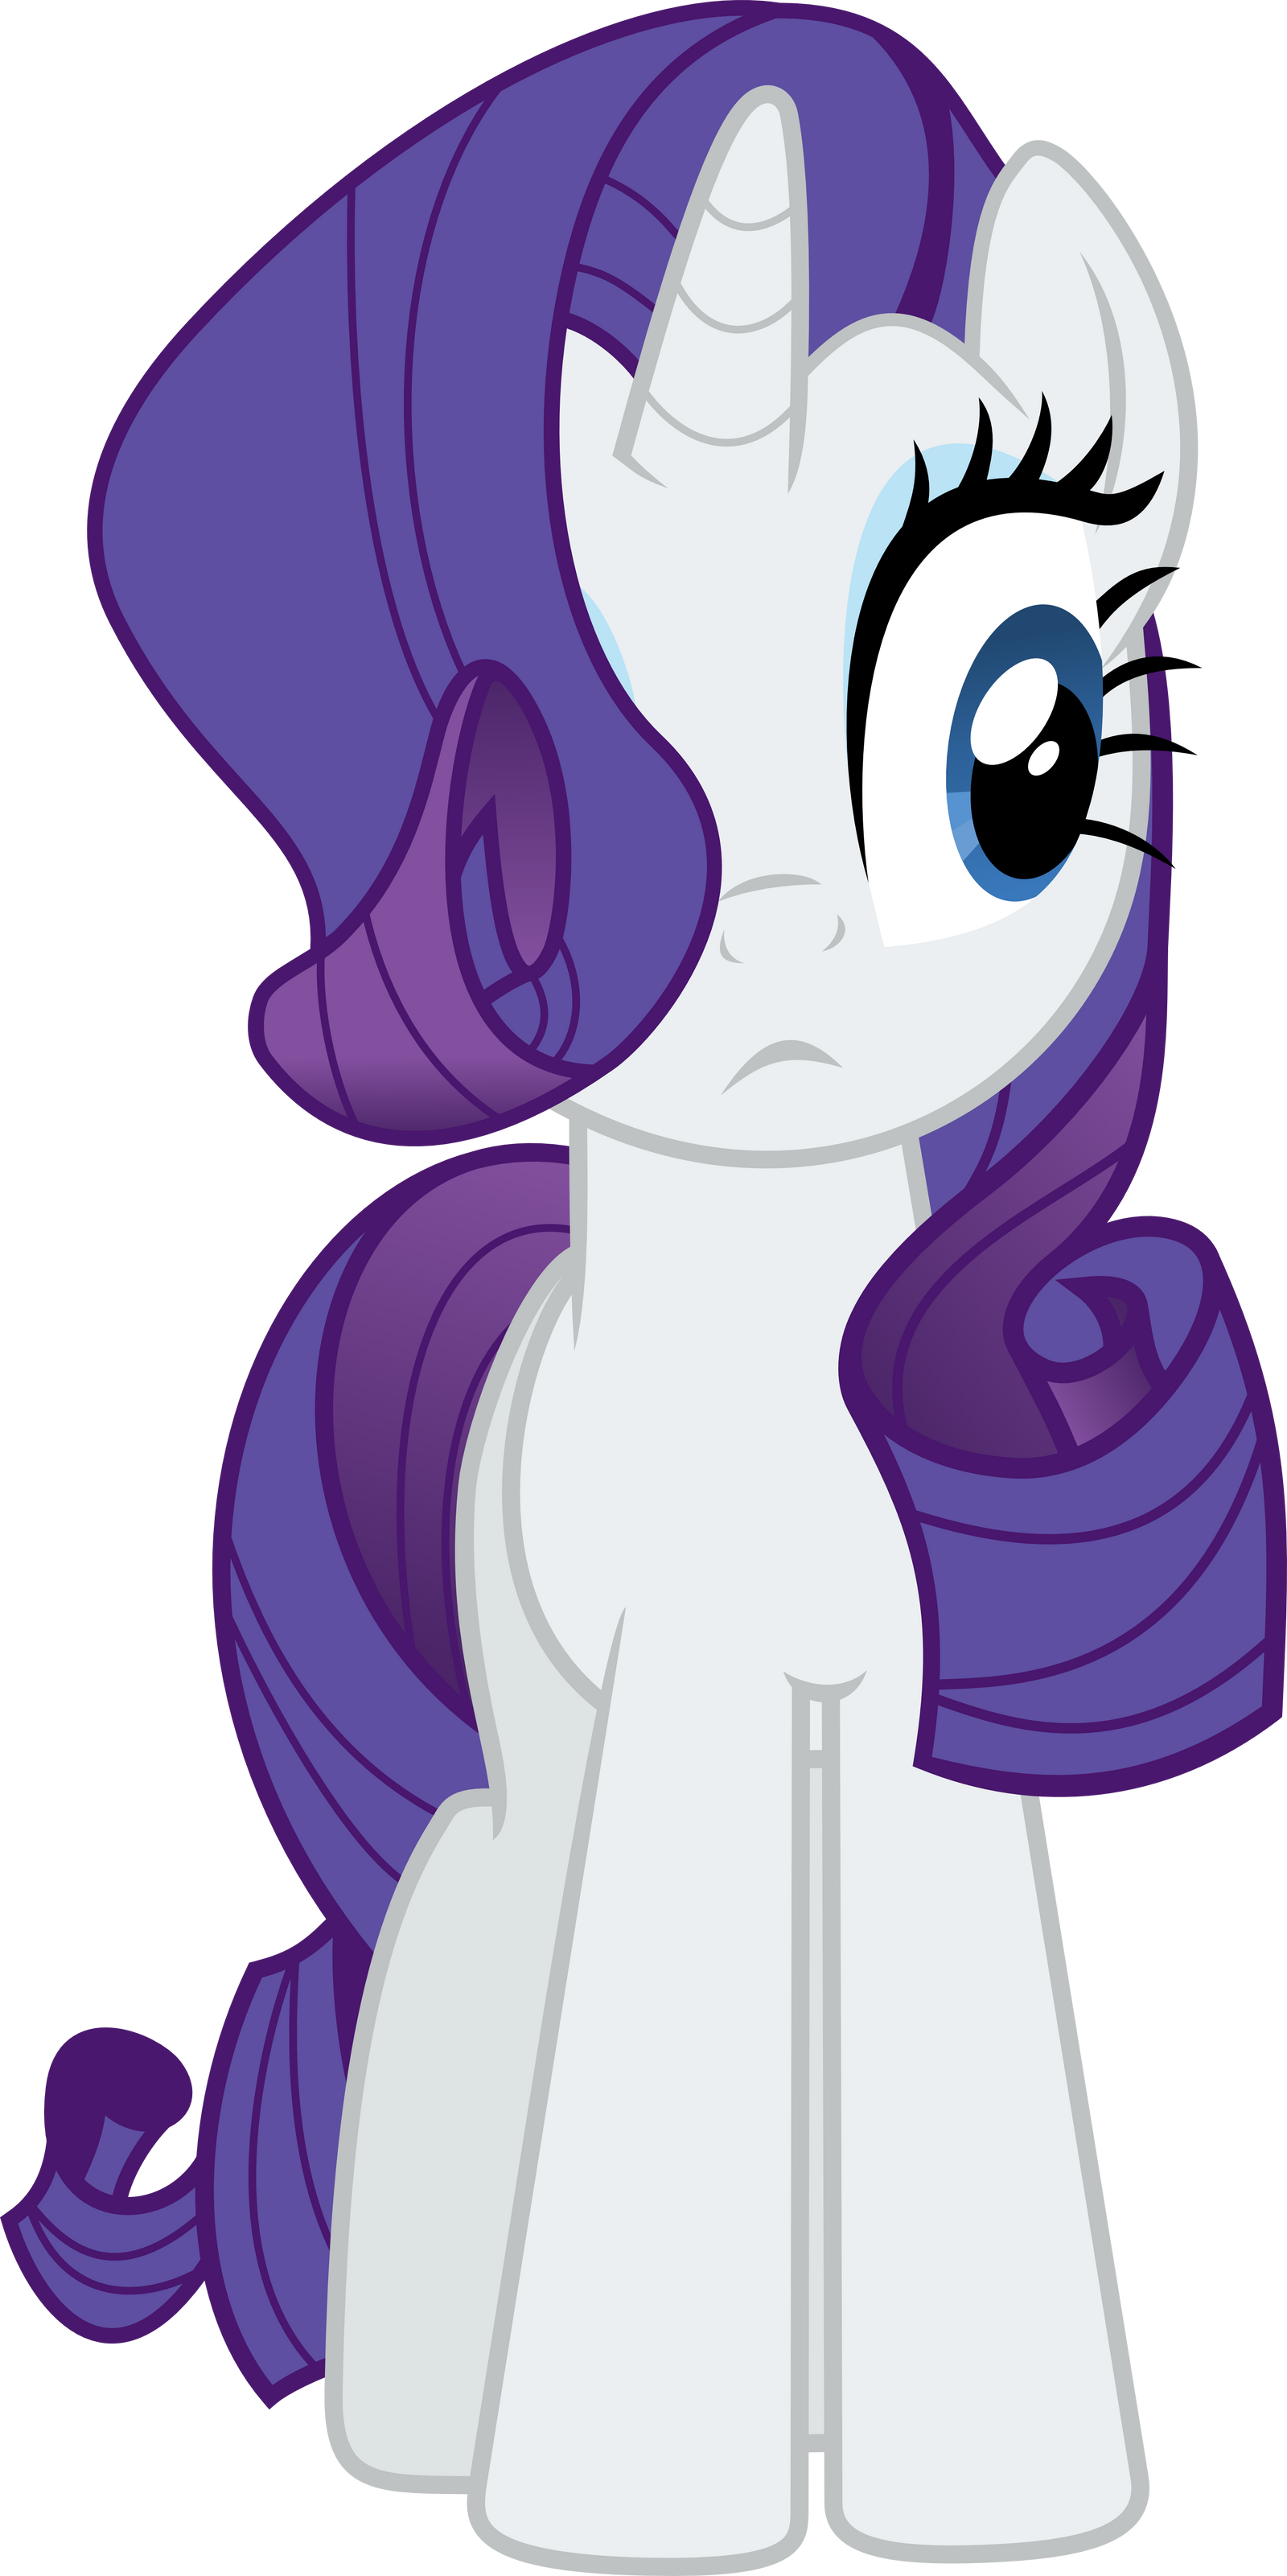 Mlp Fim Fabulous Rarity Favourites By Aelther On Deviantart